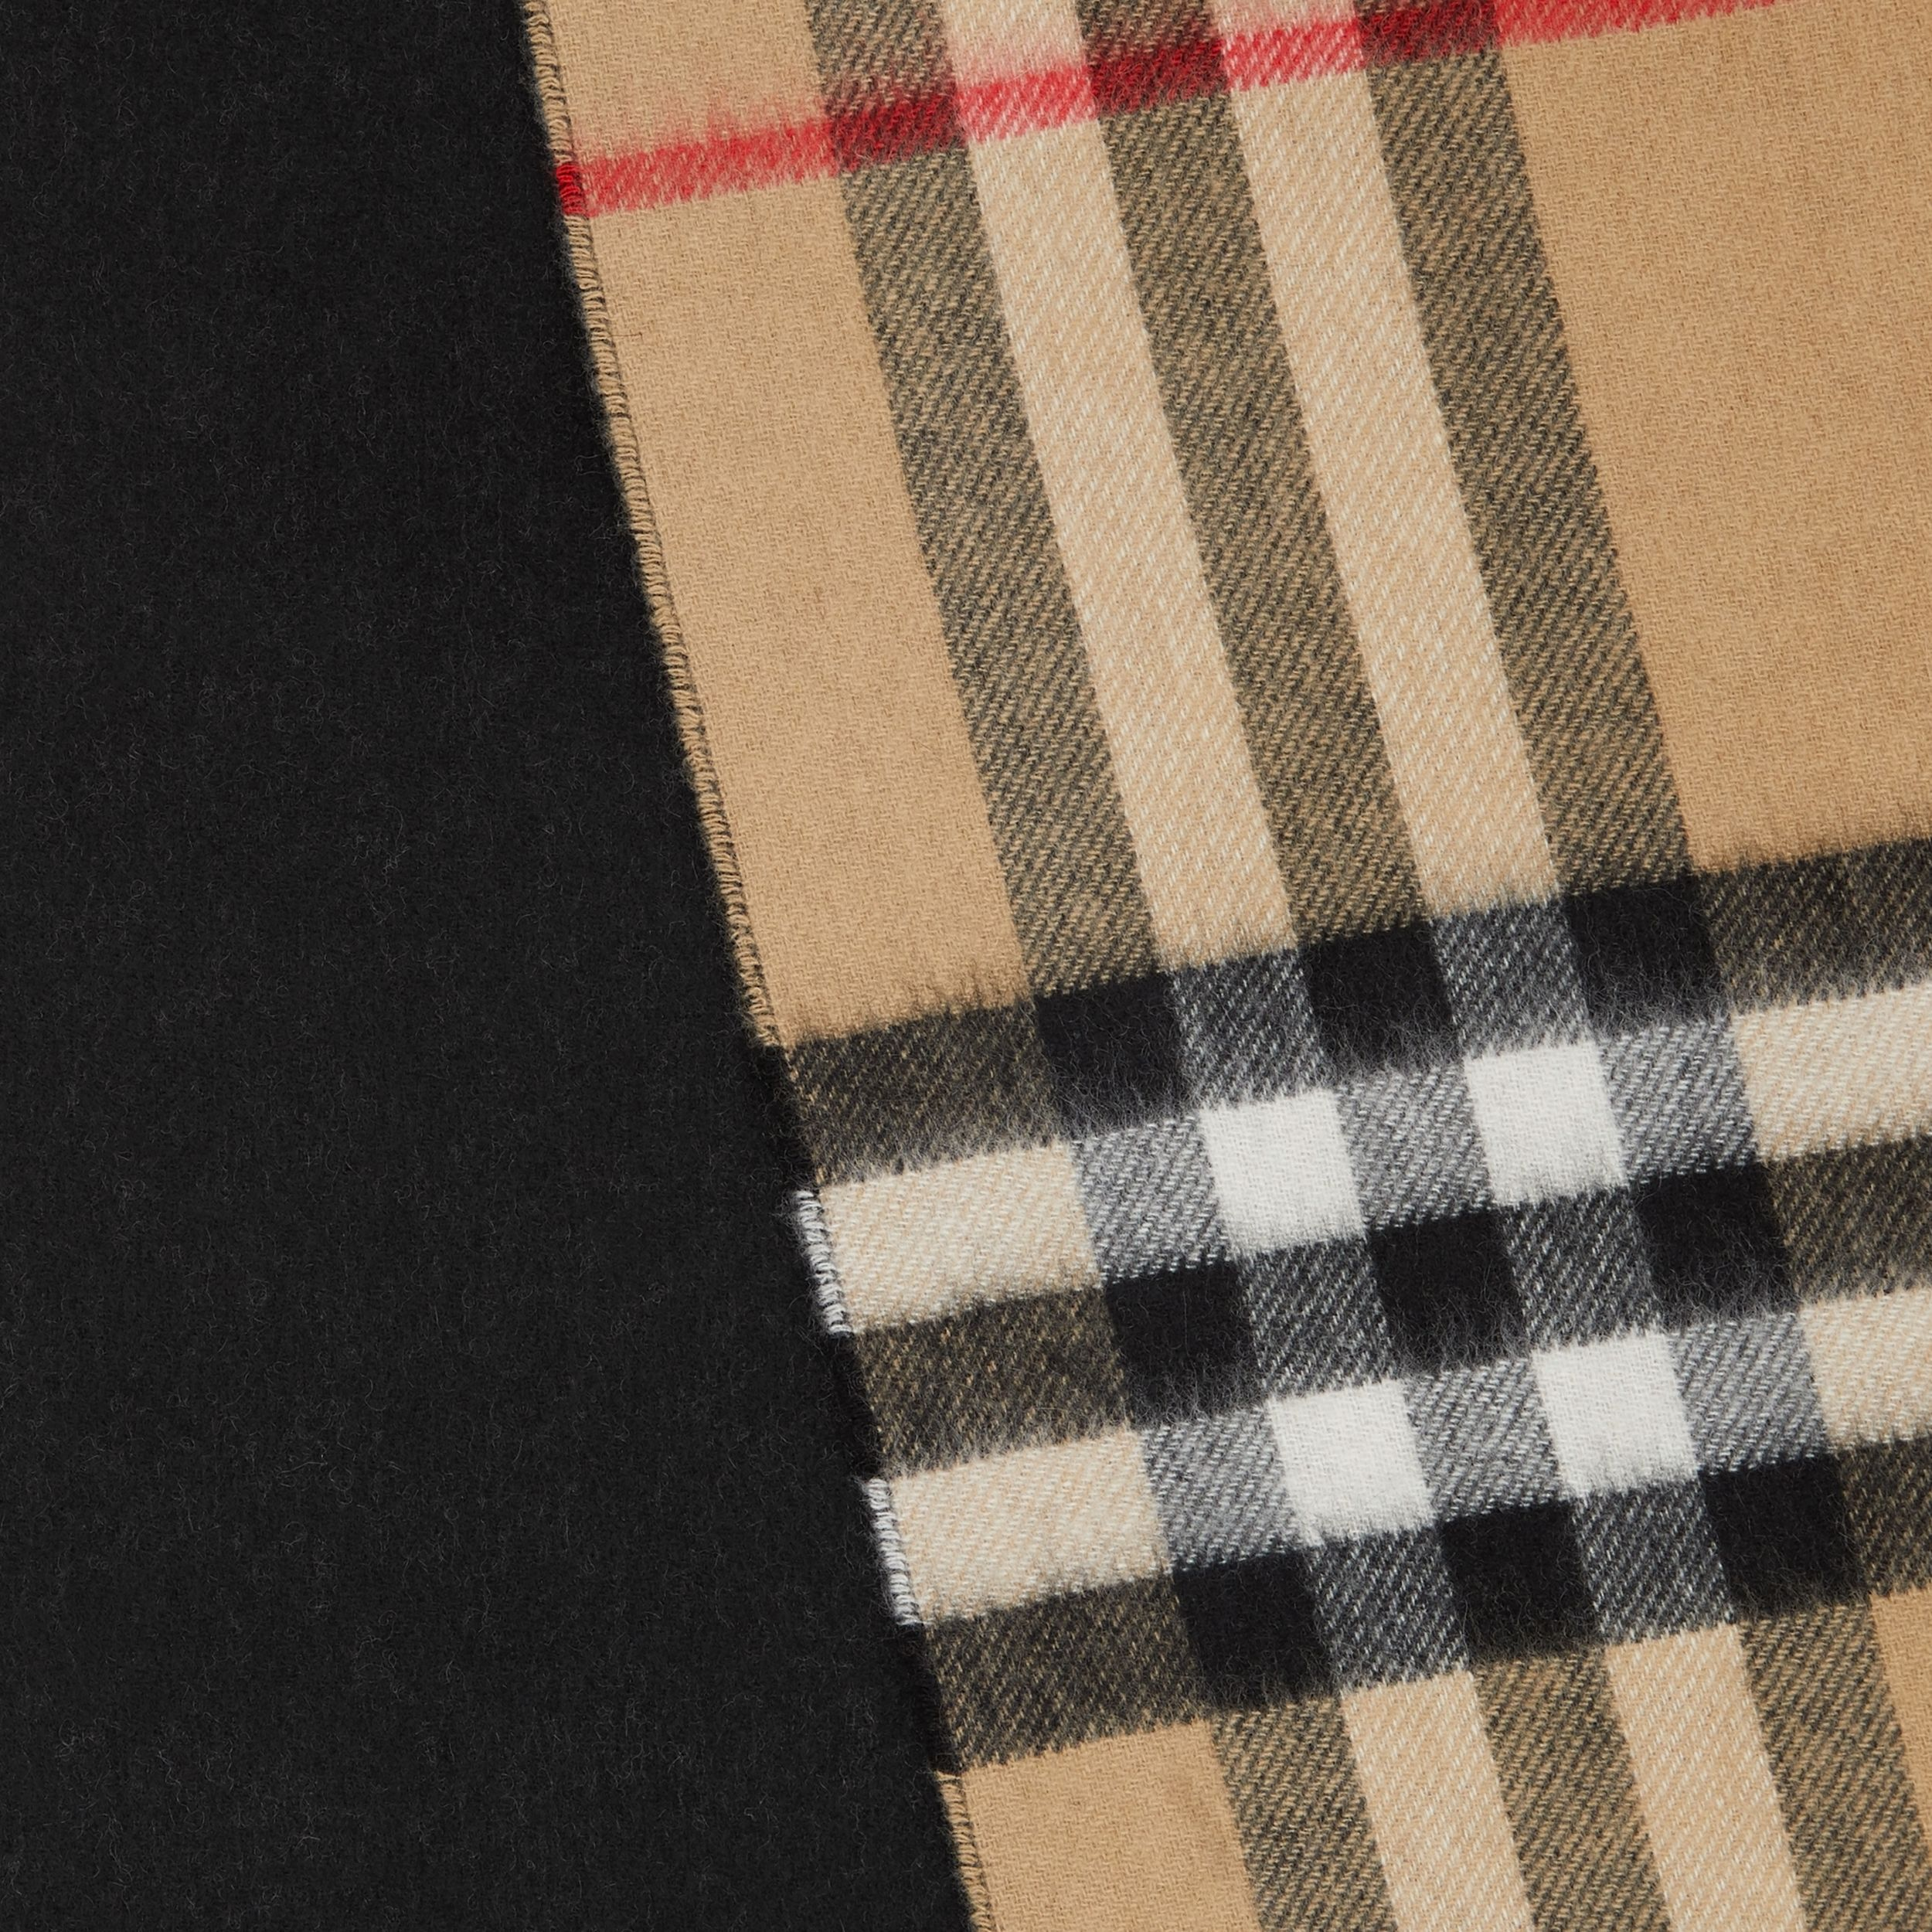 Reversible Check Cashmere Scarf in Black | Burberry - 2